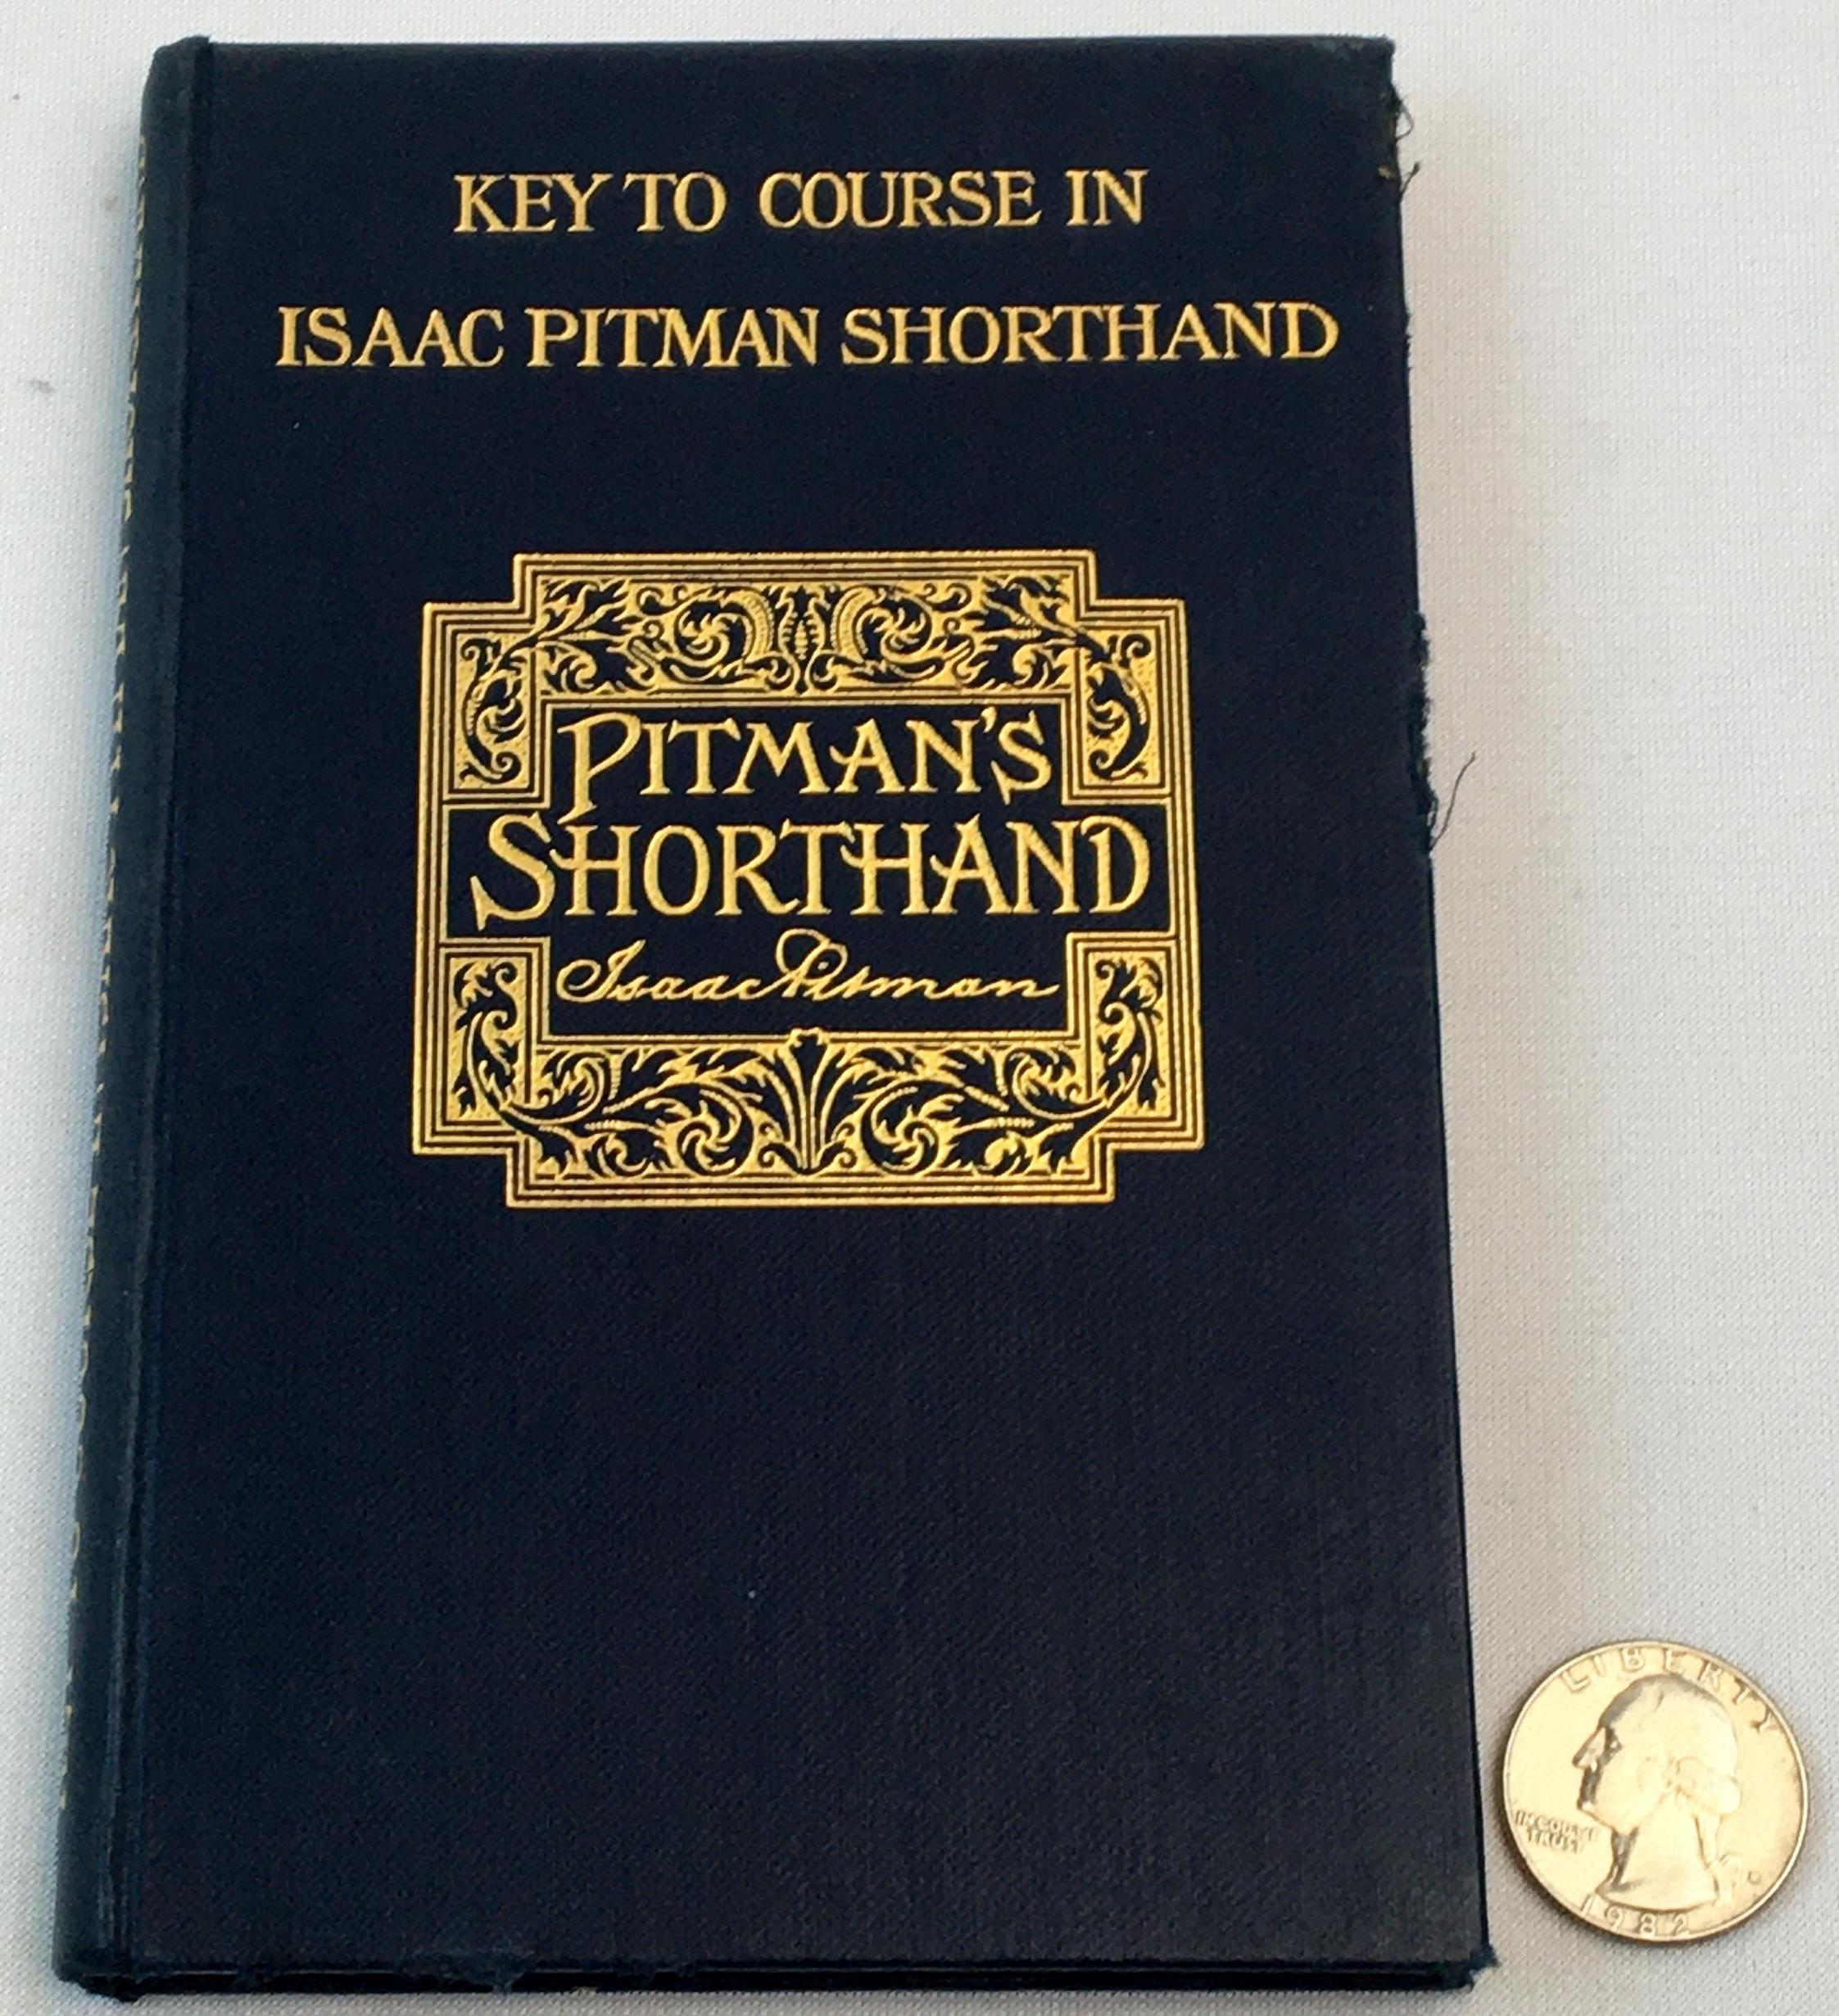 1908 Key To Course in Issac Pitman Shorthand